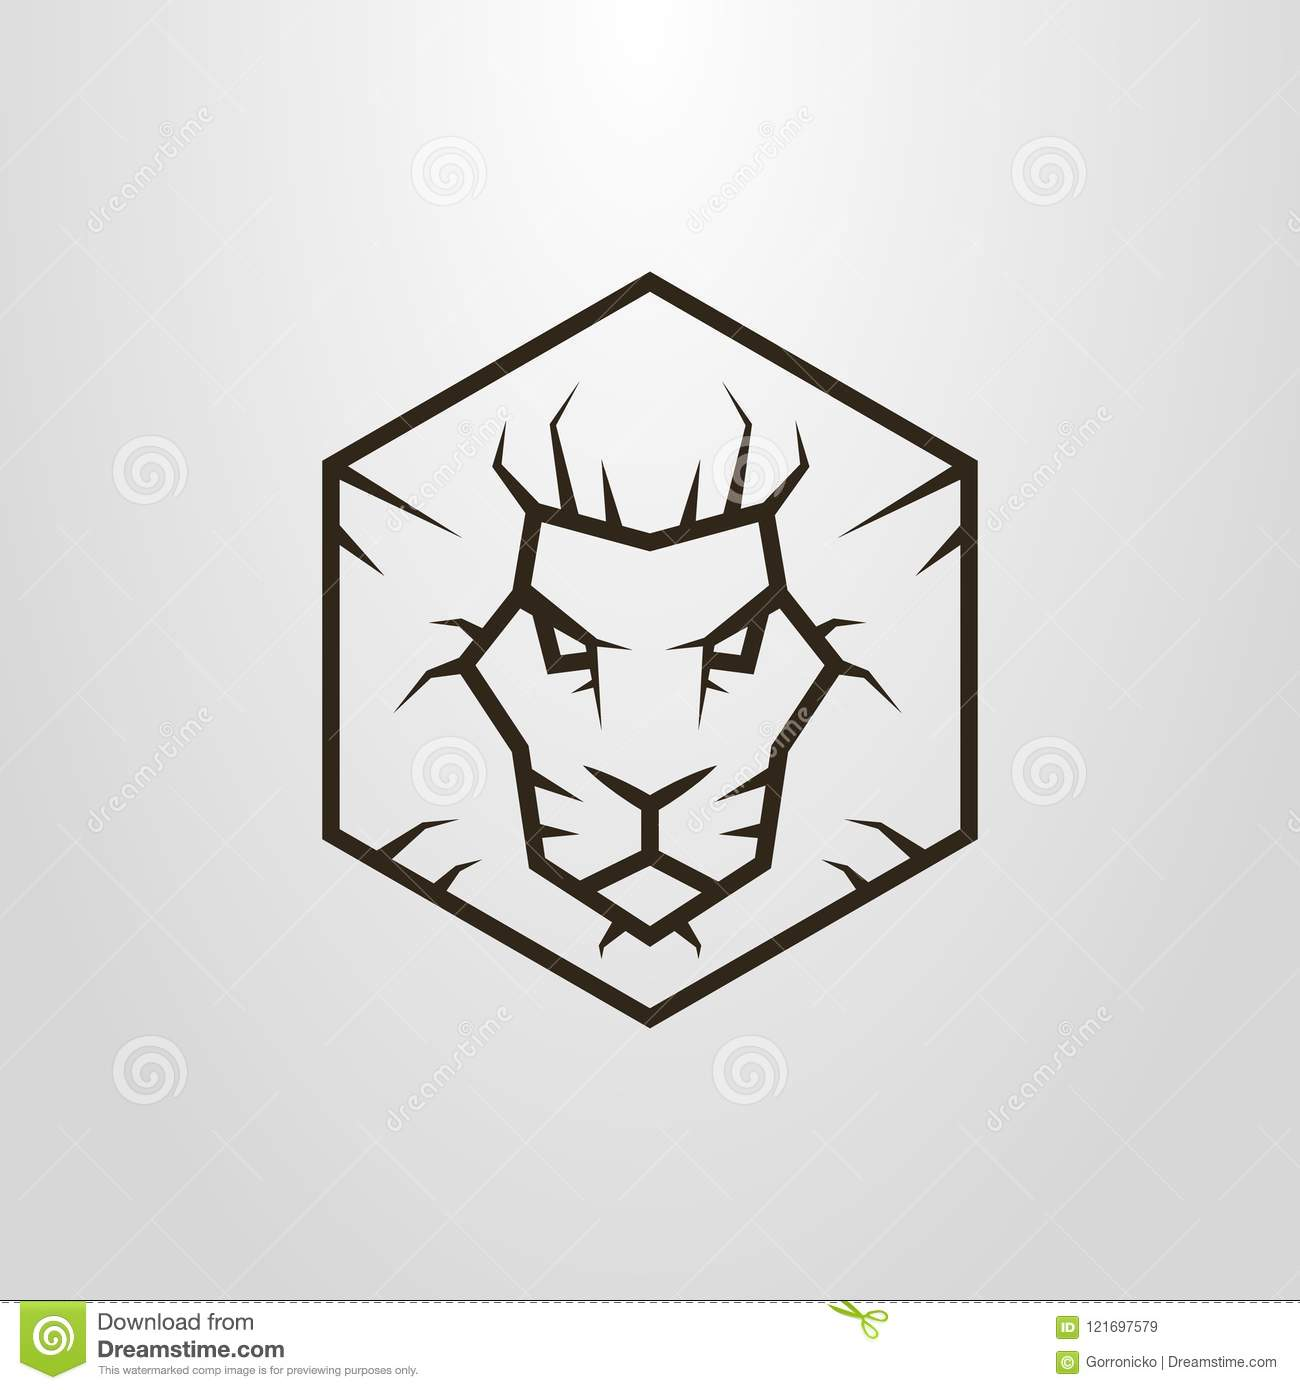 Simple Line Lion Head Stock Illustrations 643 Simple Line Lion Head Stock Illustrations Vectors Clipart Dreamstime How to add a lead to dynamics crm by ben ward. https www dreamstime com black white simple vector line art hexagon symbol lion head image121697579